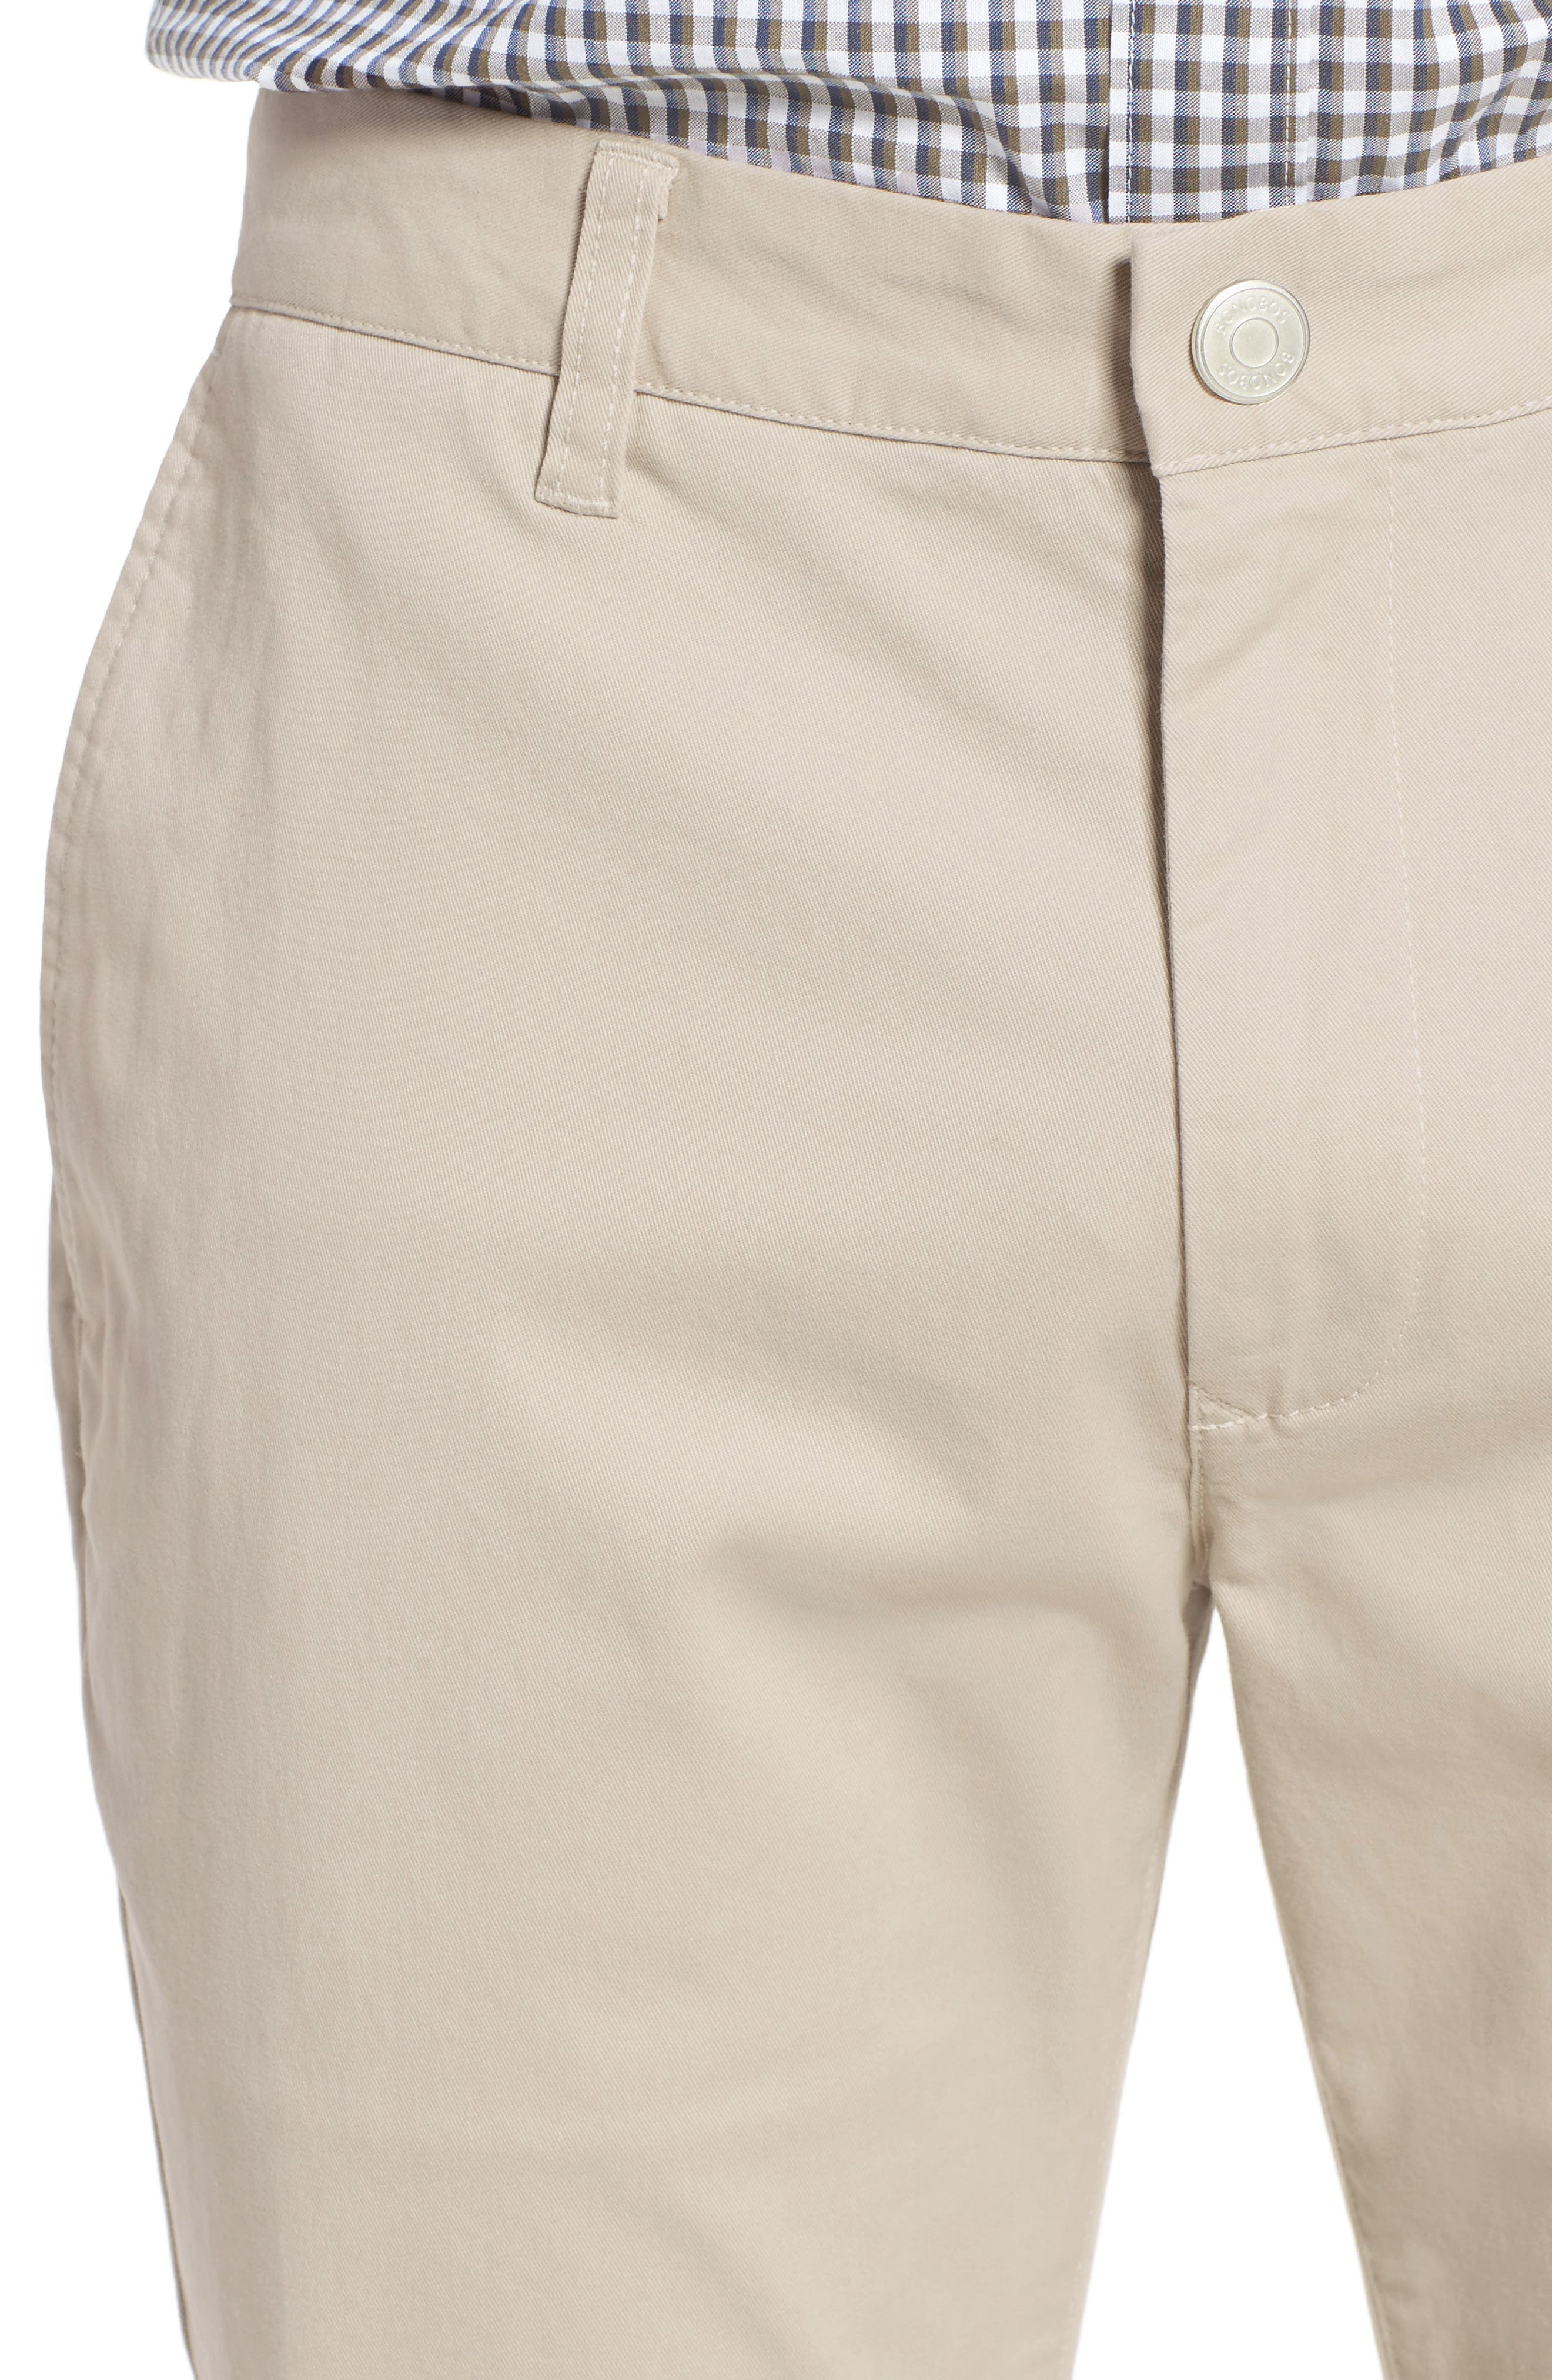 Tailored Fit Washed Stretch Cotton Chinos,                             Alternate thumbnail 4, color,                             Millstones